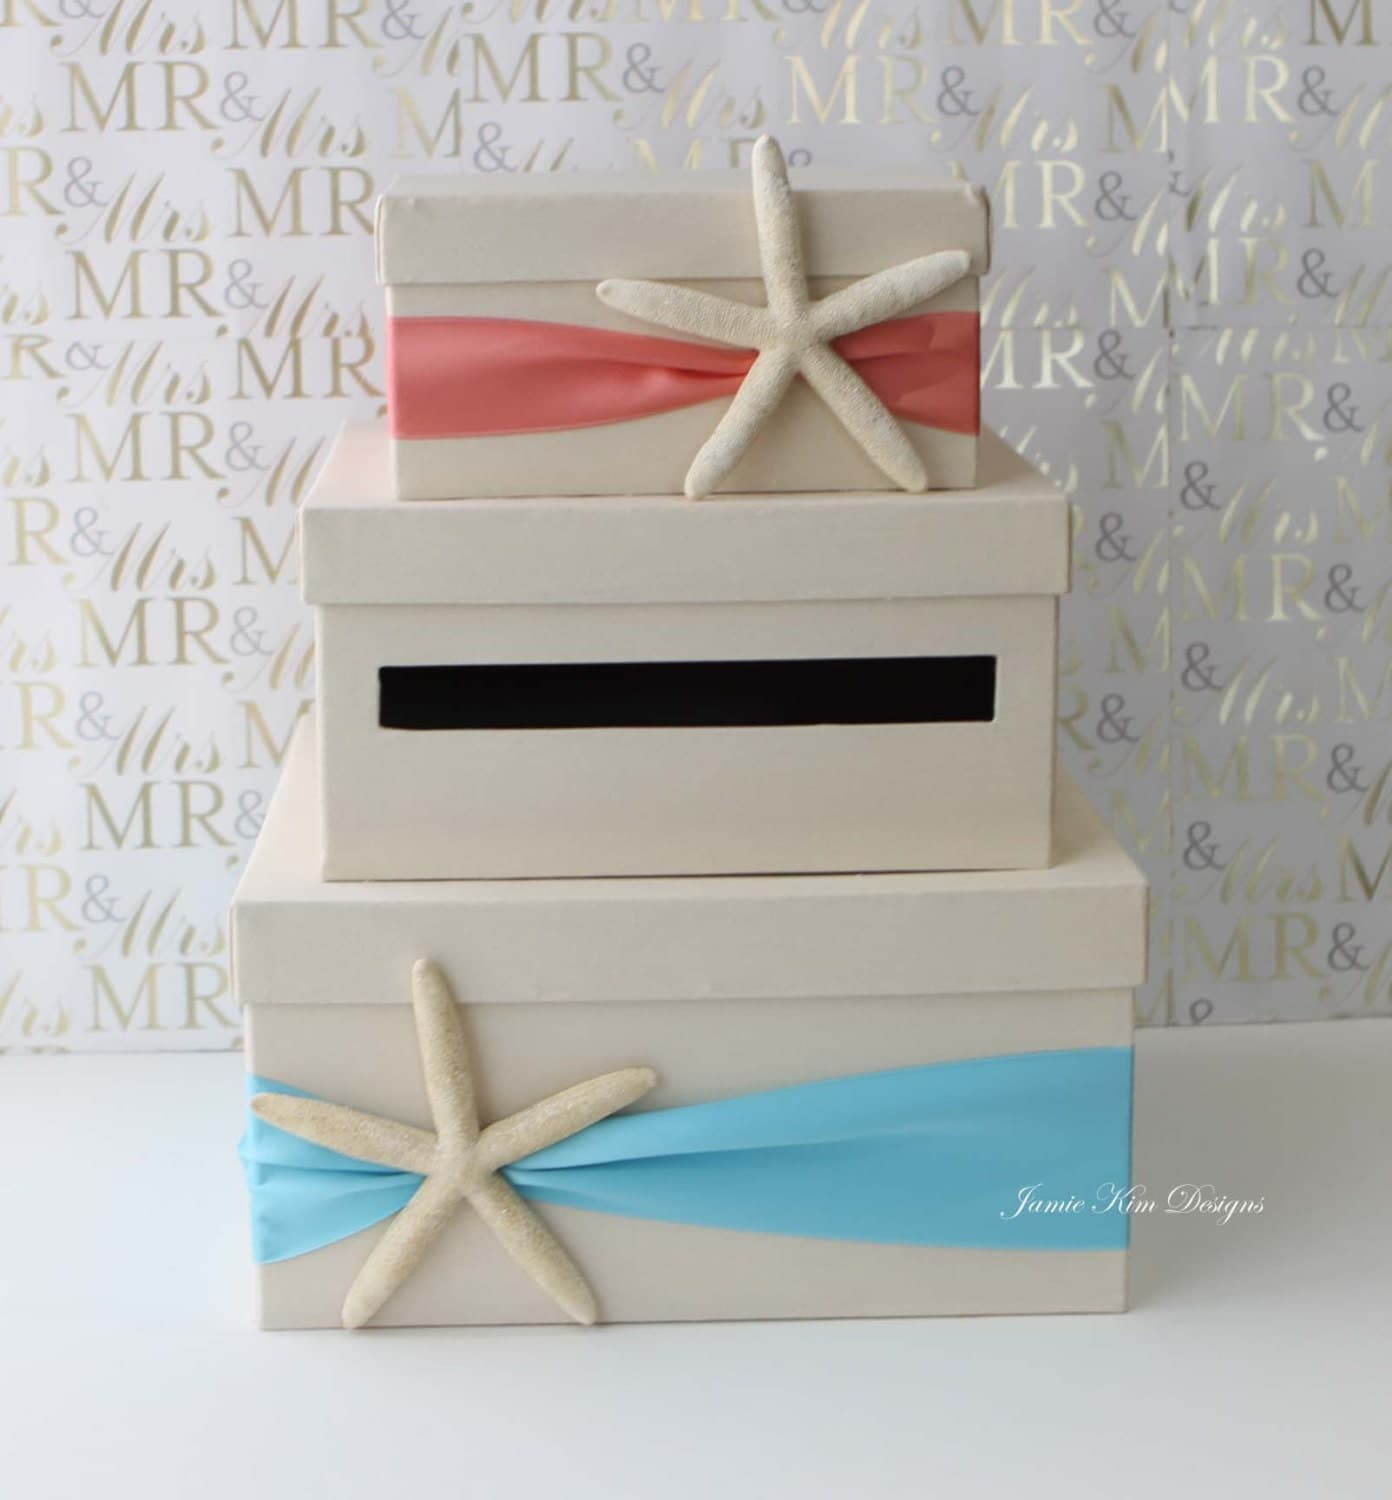 Beach Theme Home Decor Shadow Box Beach Gift: Wedding Card Box Beach Theme Starfish Wedding Card Holder